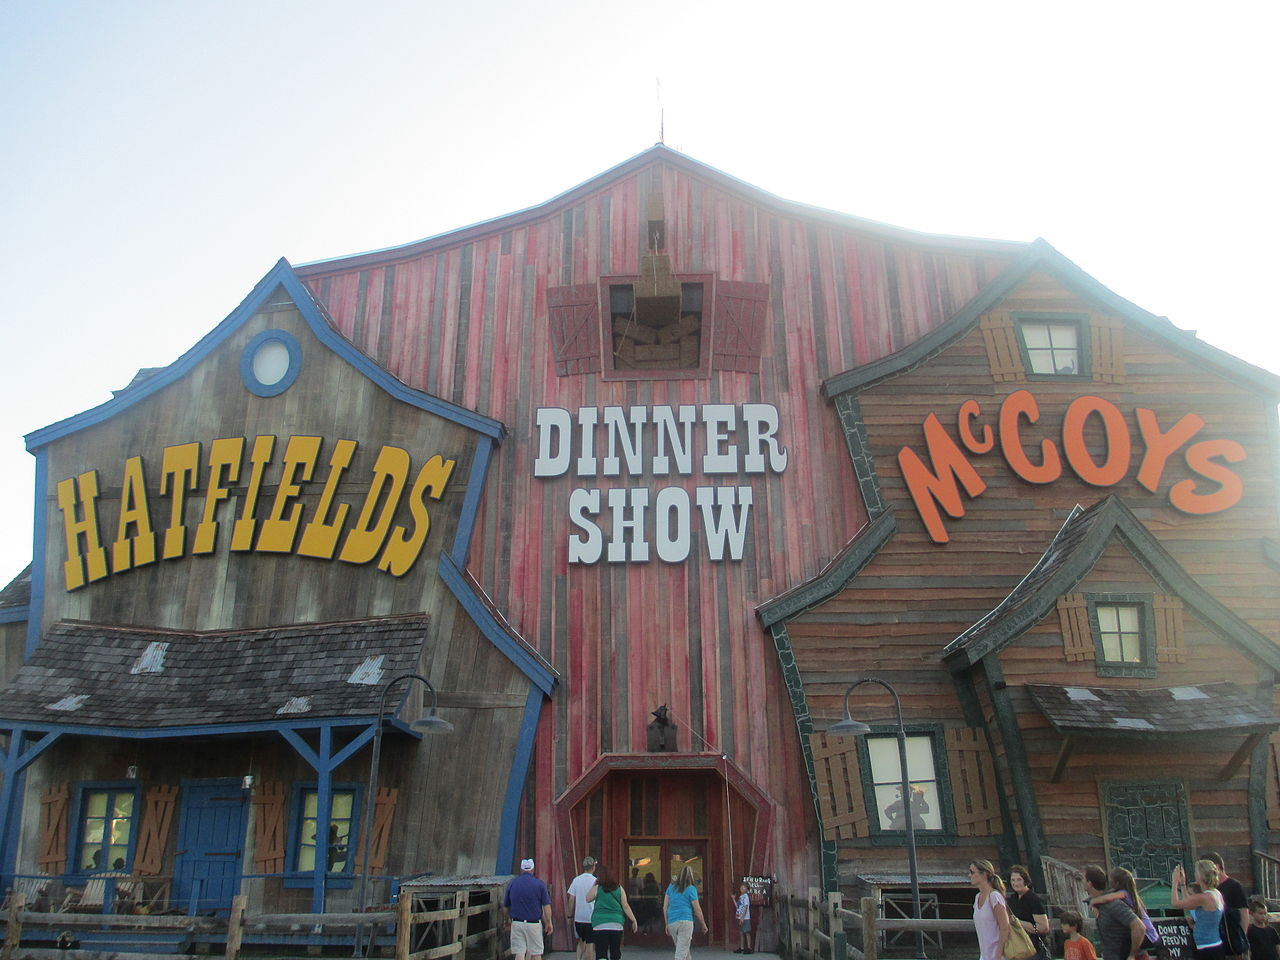 Hatfield Mccoy Dinner Show  File Hatfield & McCoy Dinner Show Pigeon Forge TN IMG